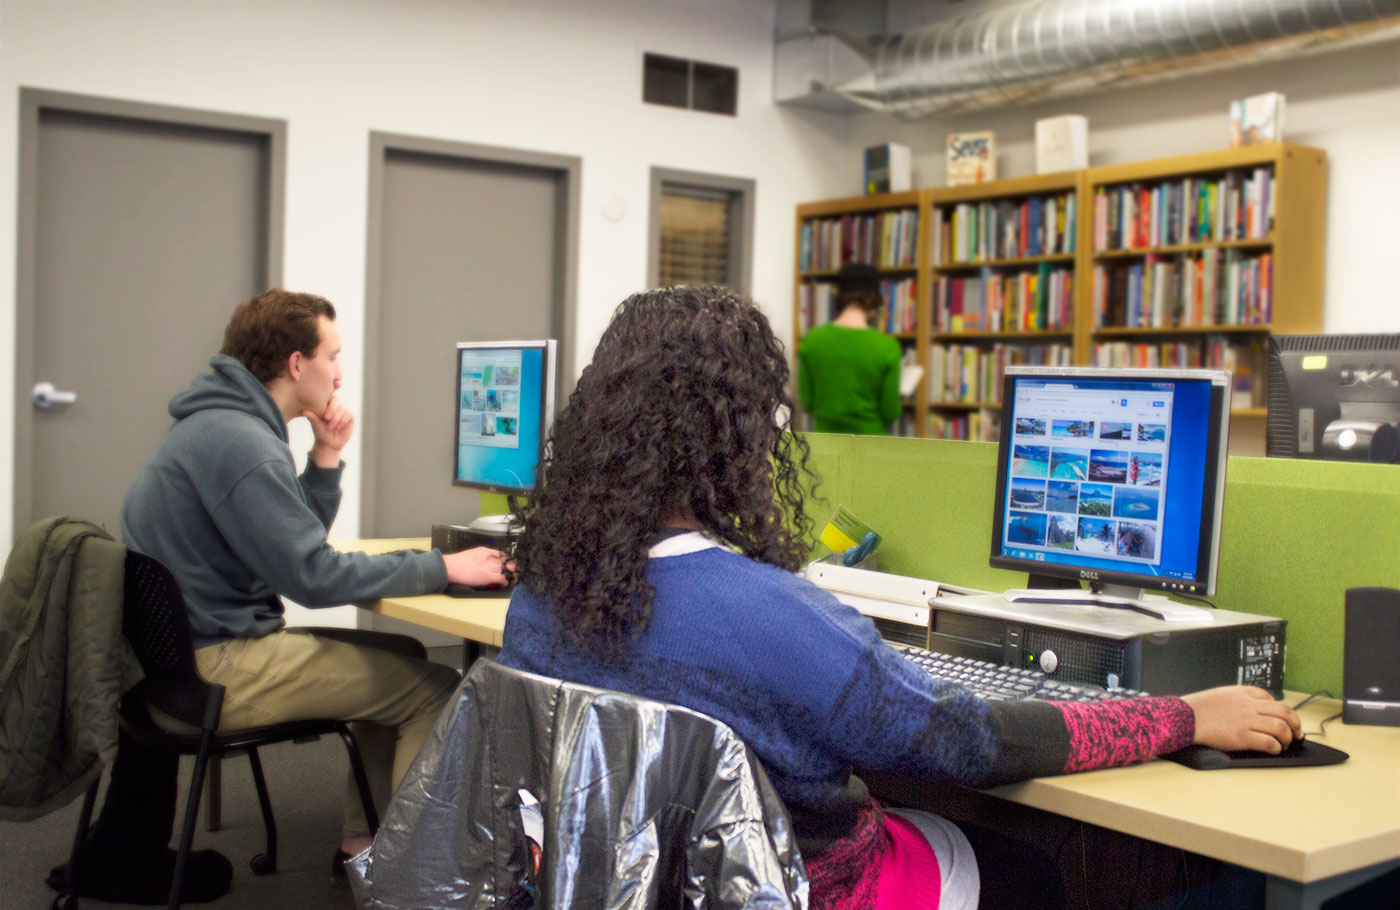 Two students sitting at the community computers inside the Holden Center while someone looks for a book in the background.